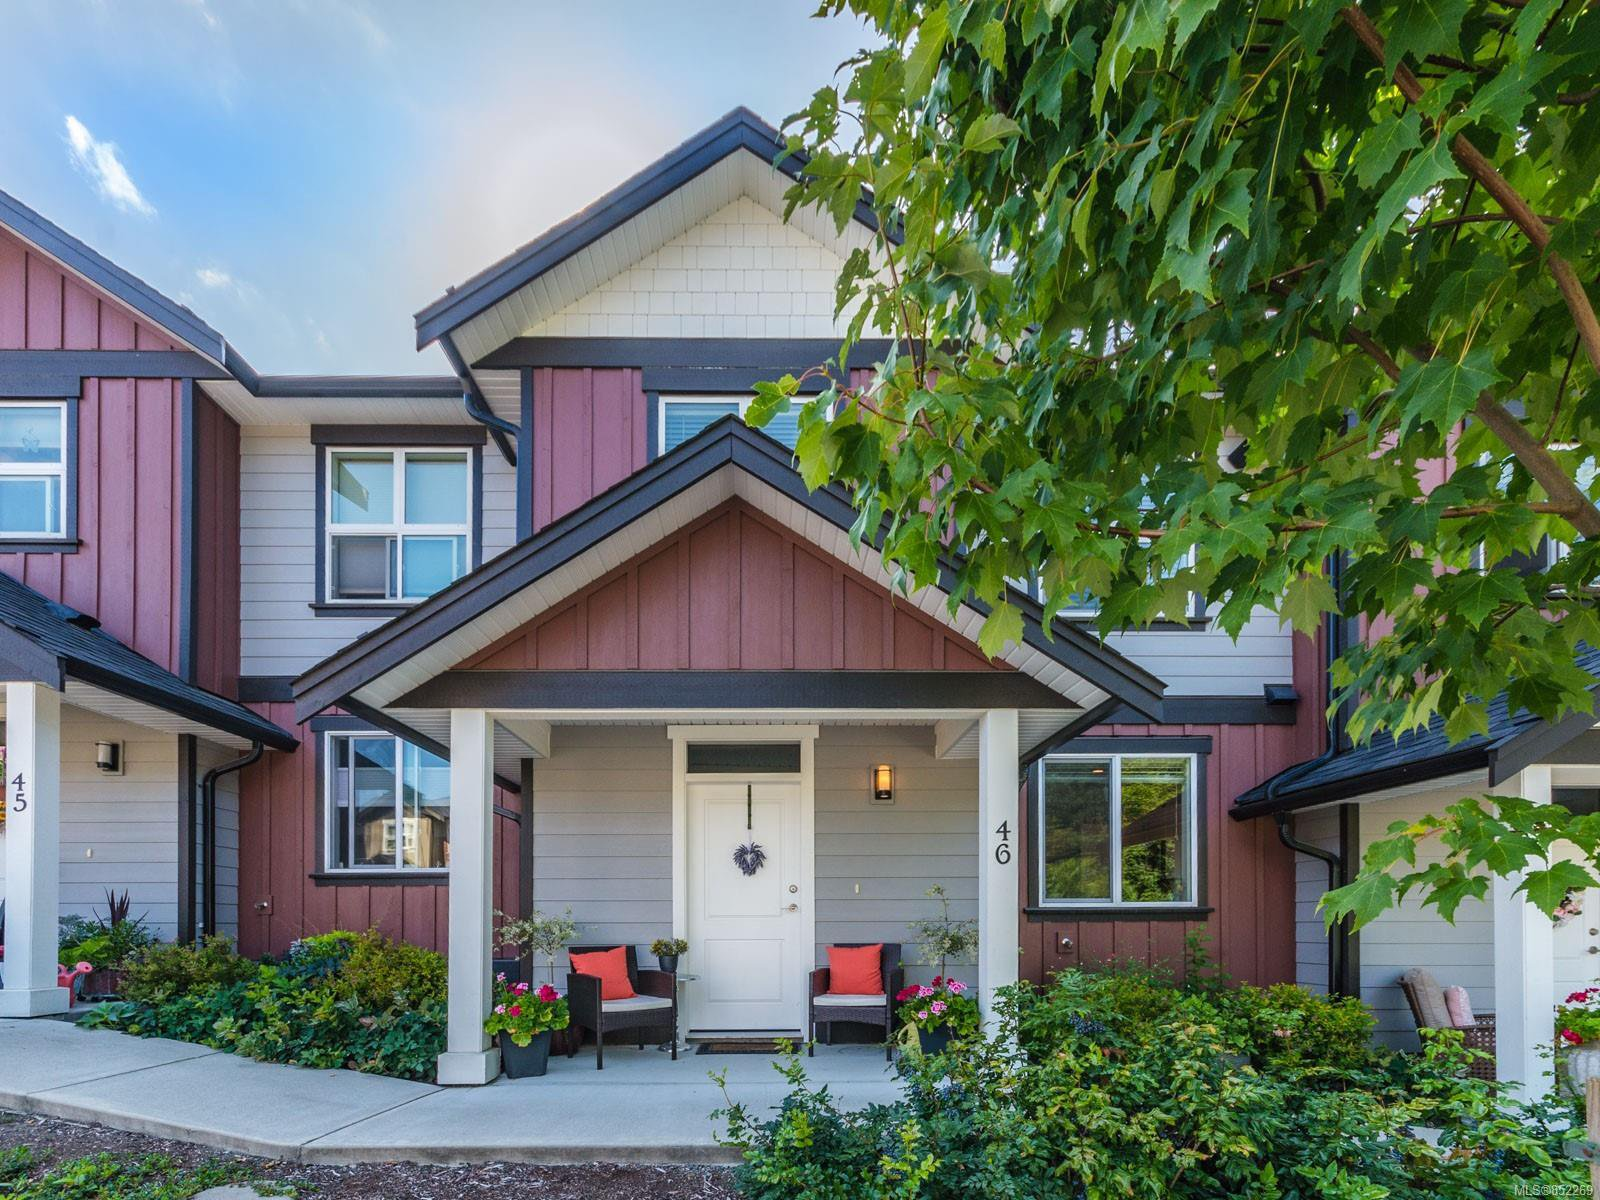 Main Photo: 46 512 Jim Cram Dr in : Du Ladysmith Row/Townhouse for sale (Duncan)  : MLS®# 852269